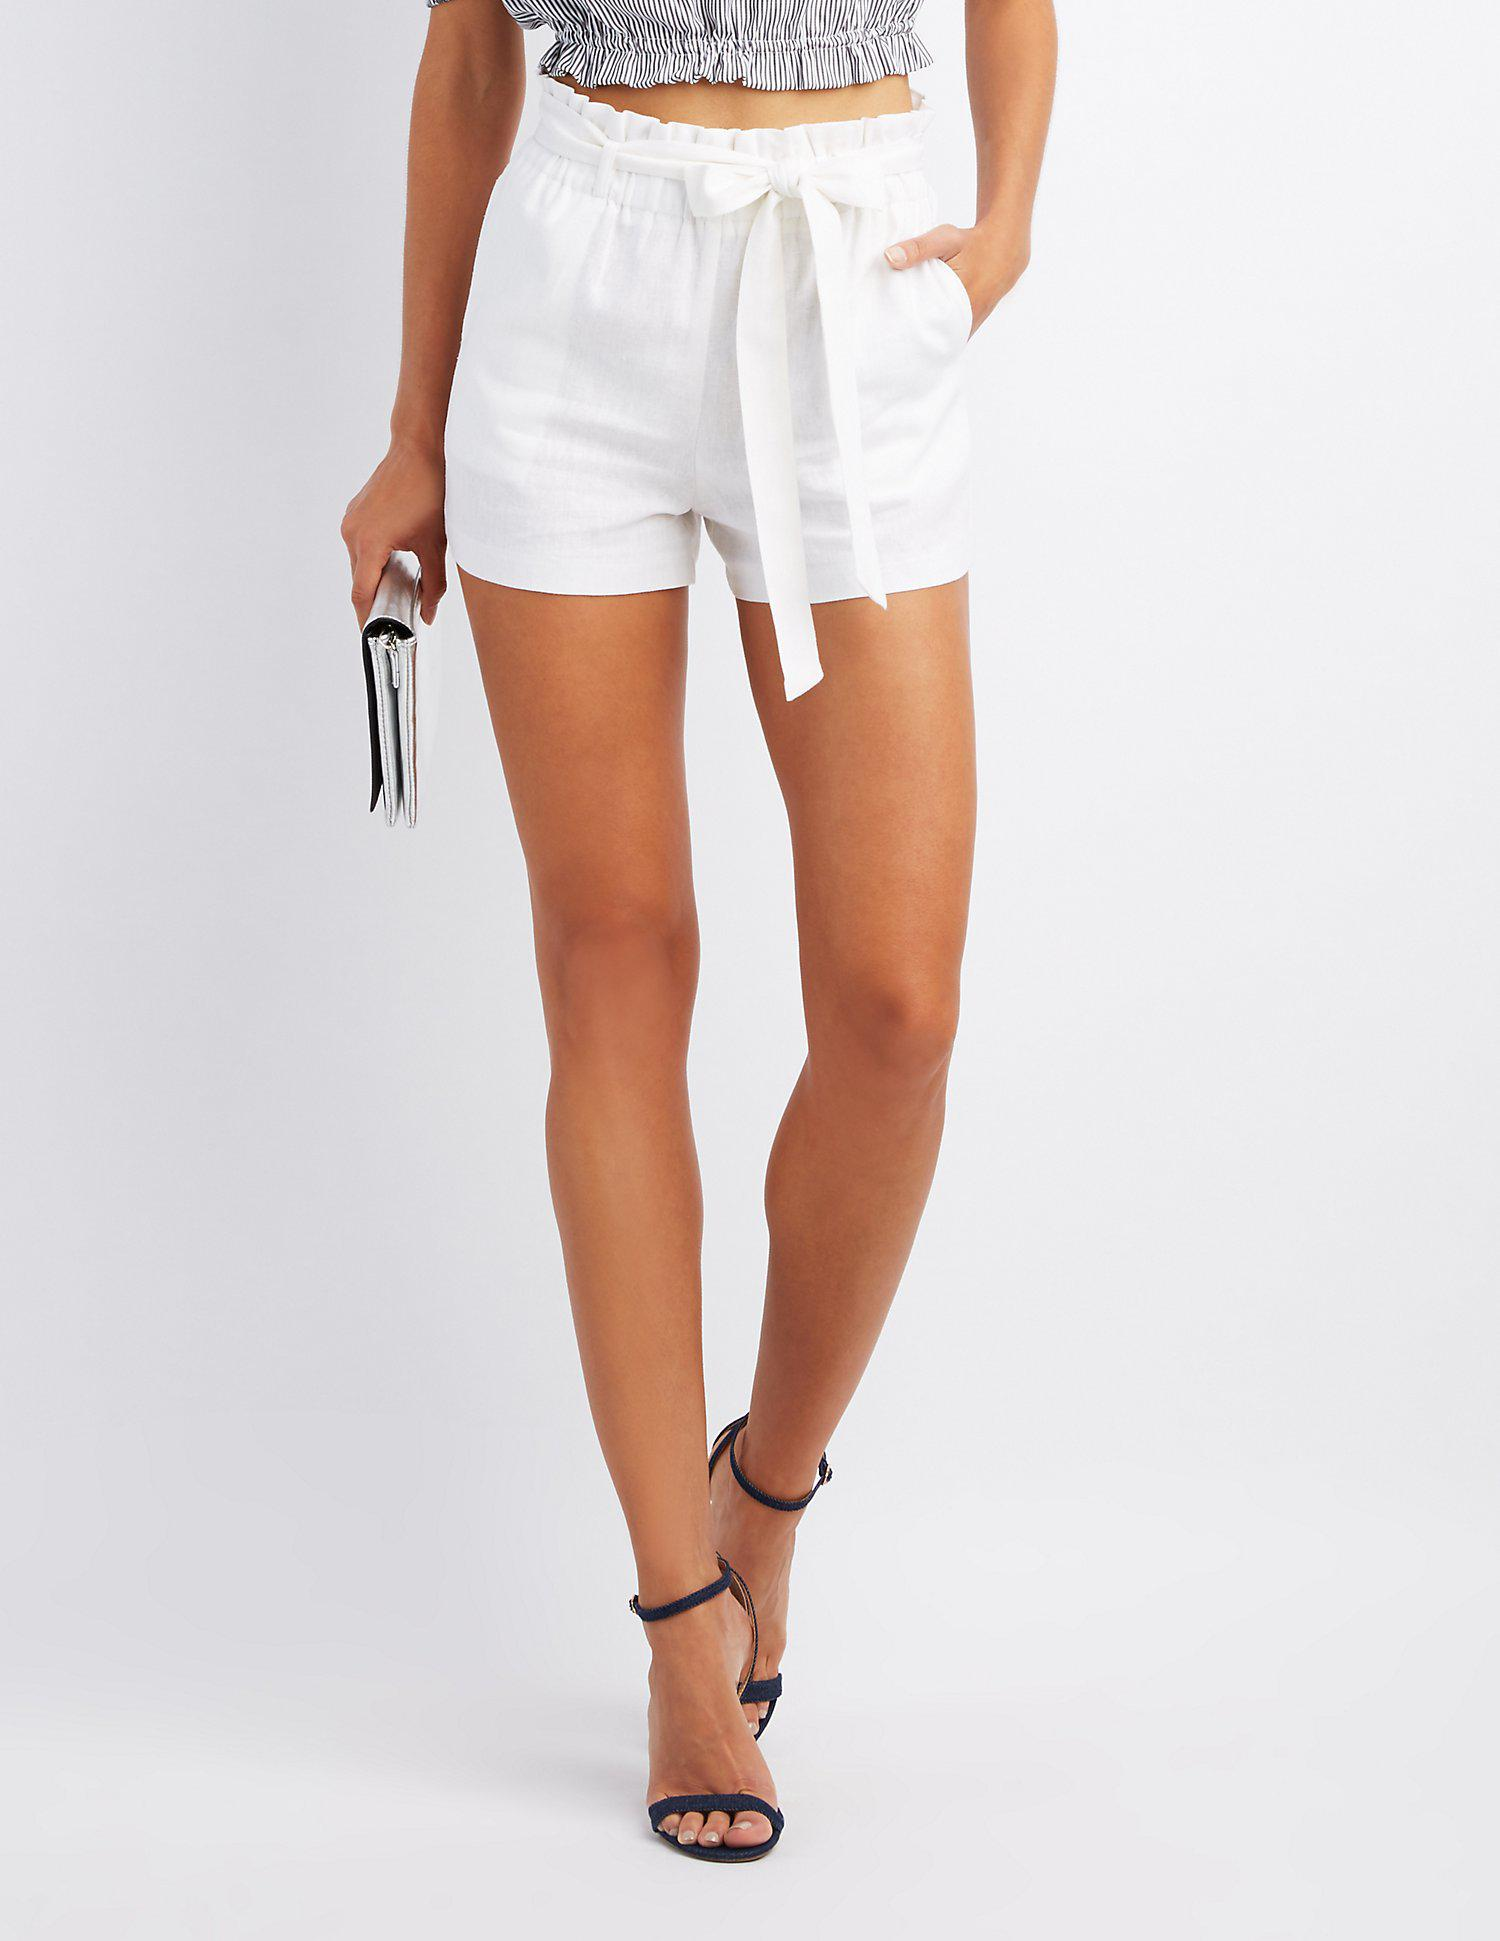 Lyst - Charlotte Russe Smocked Tie-front Shorts in White